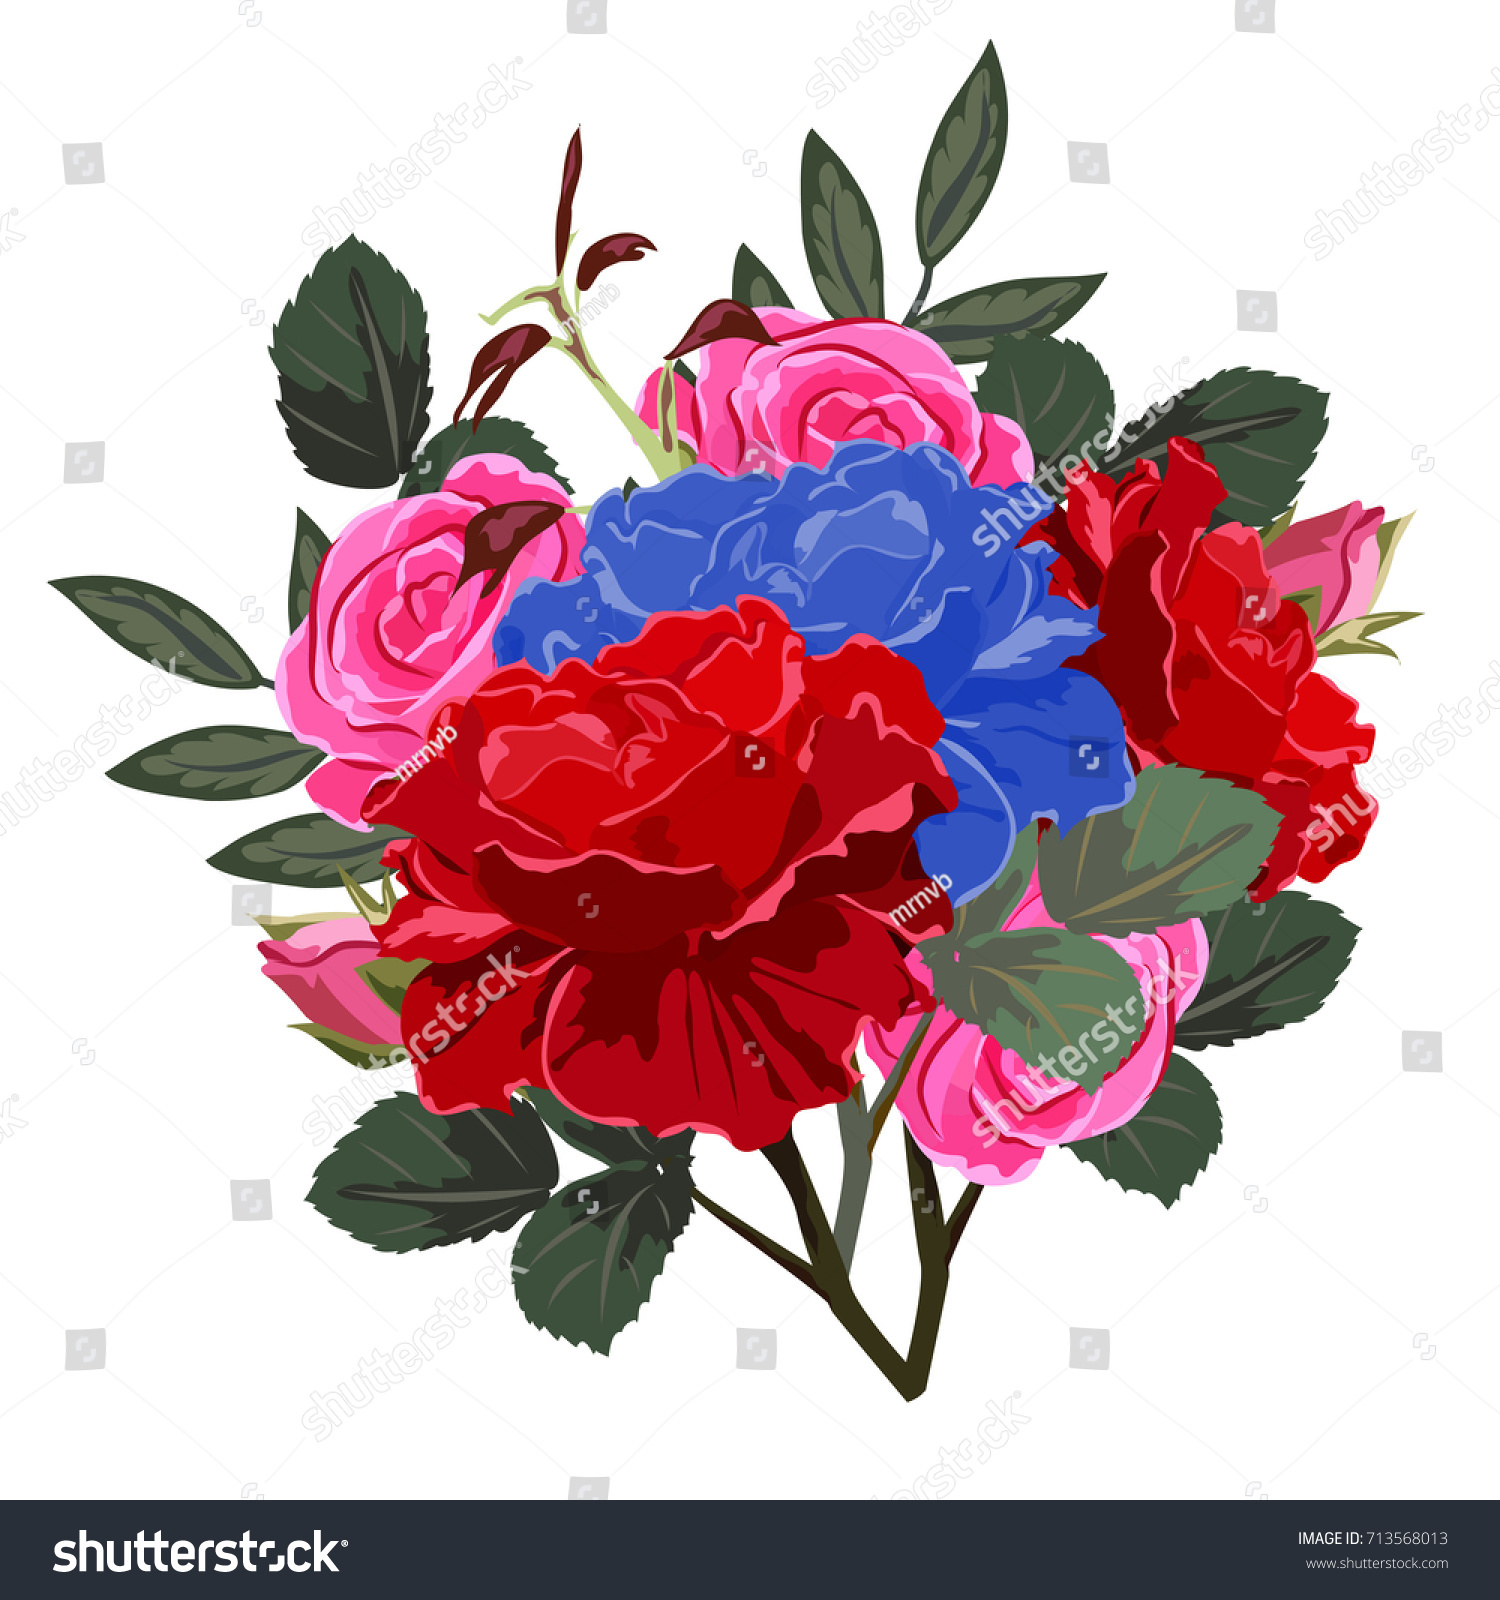 Bouquet Red Pink Blue Roses Decor Stock Vector (Royalty Free ...